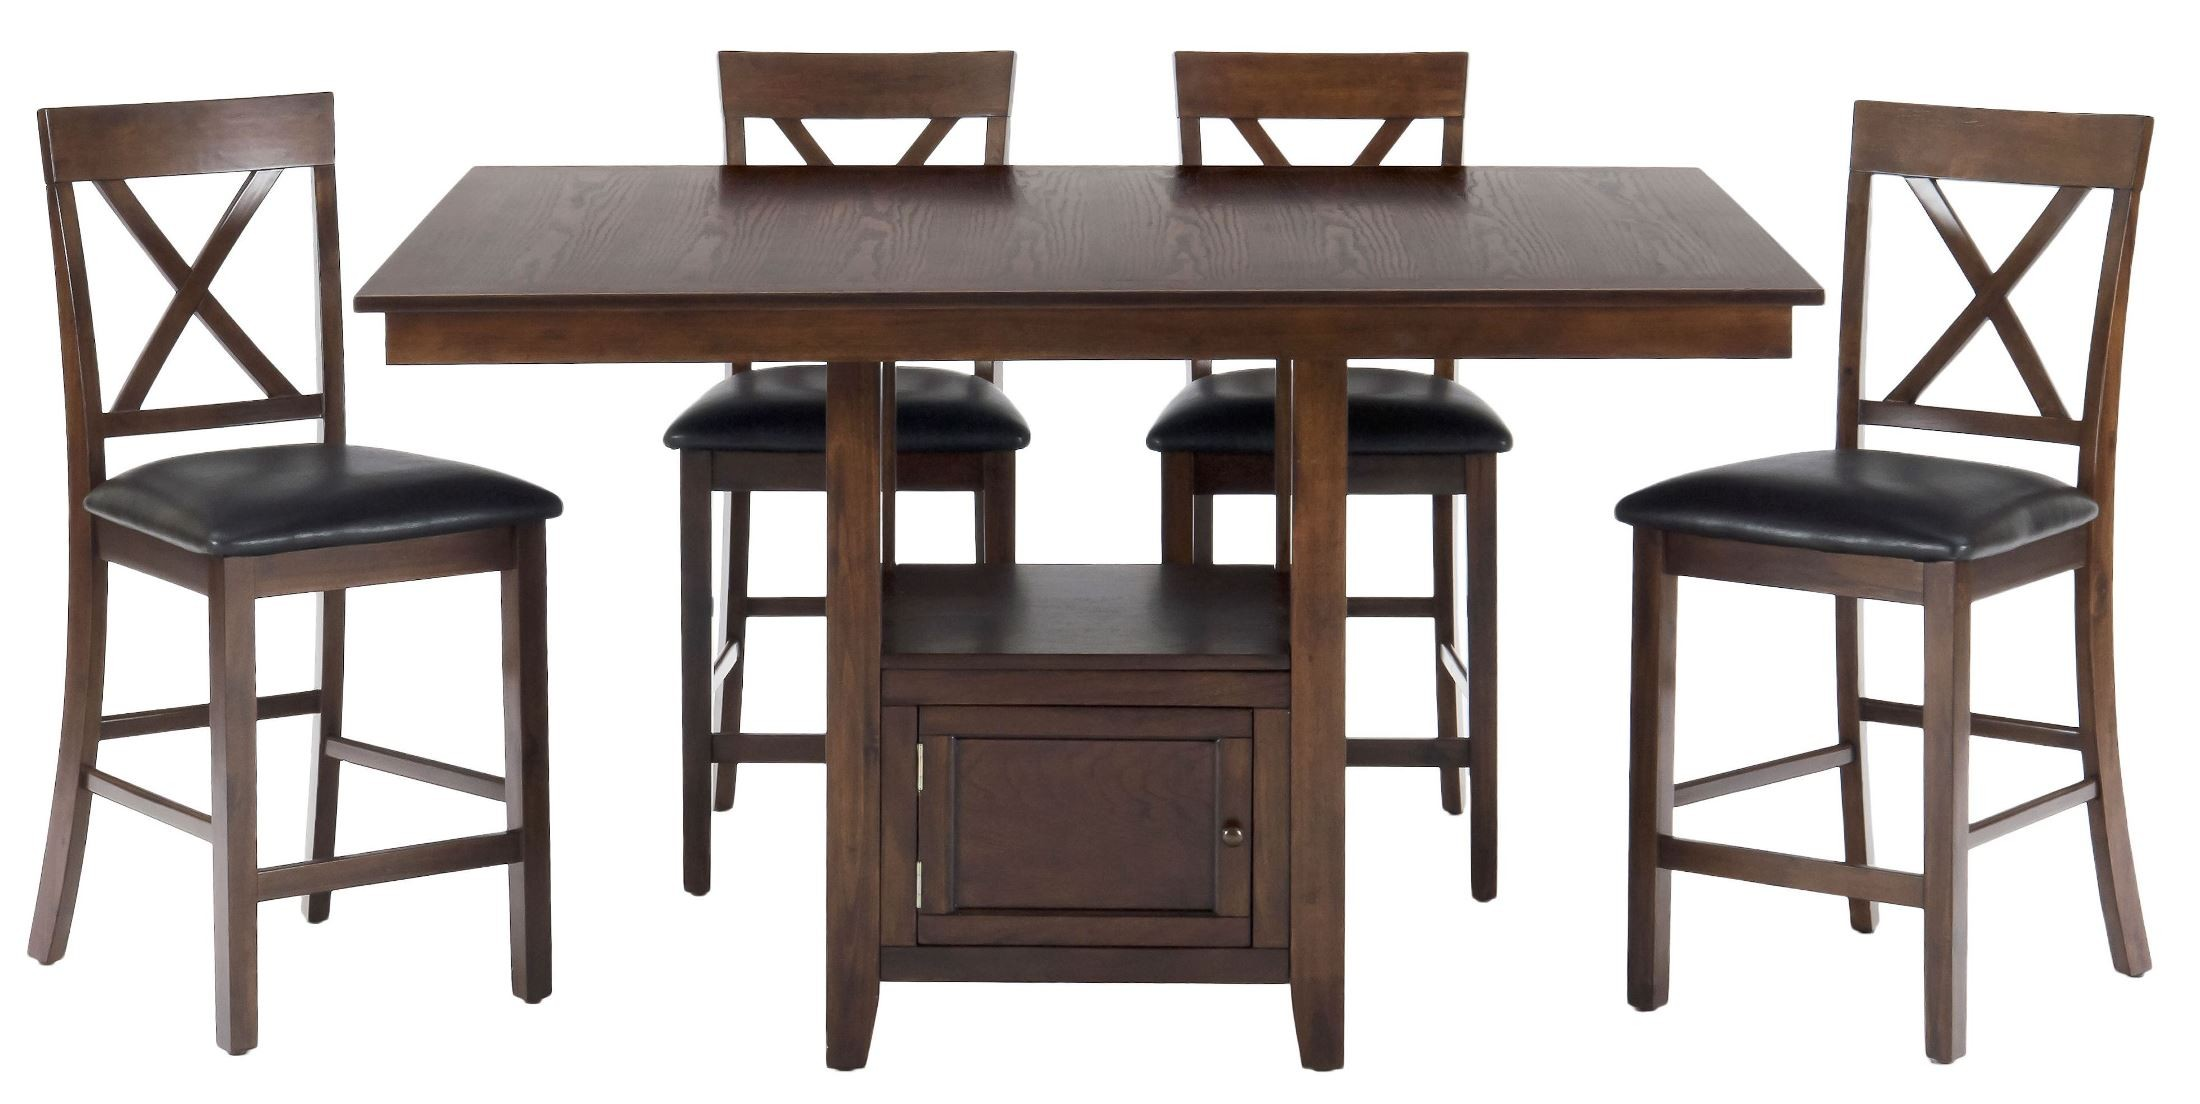 hd wallpapers counter height dining set oak 3d